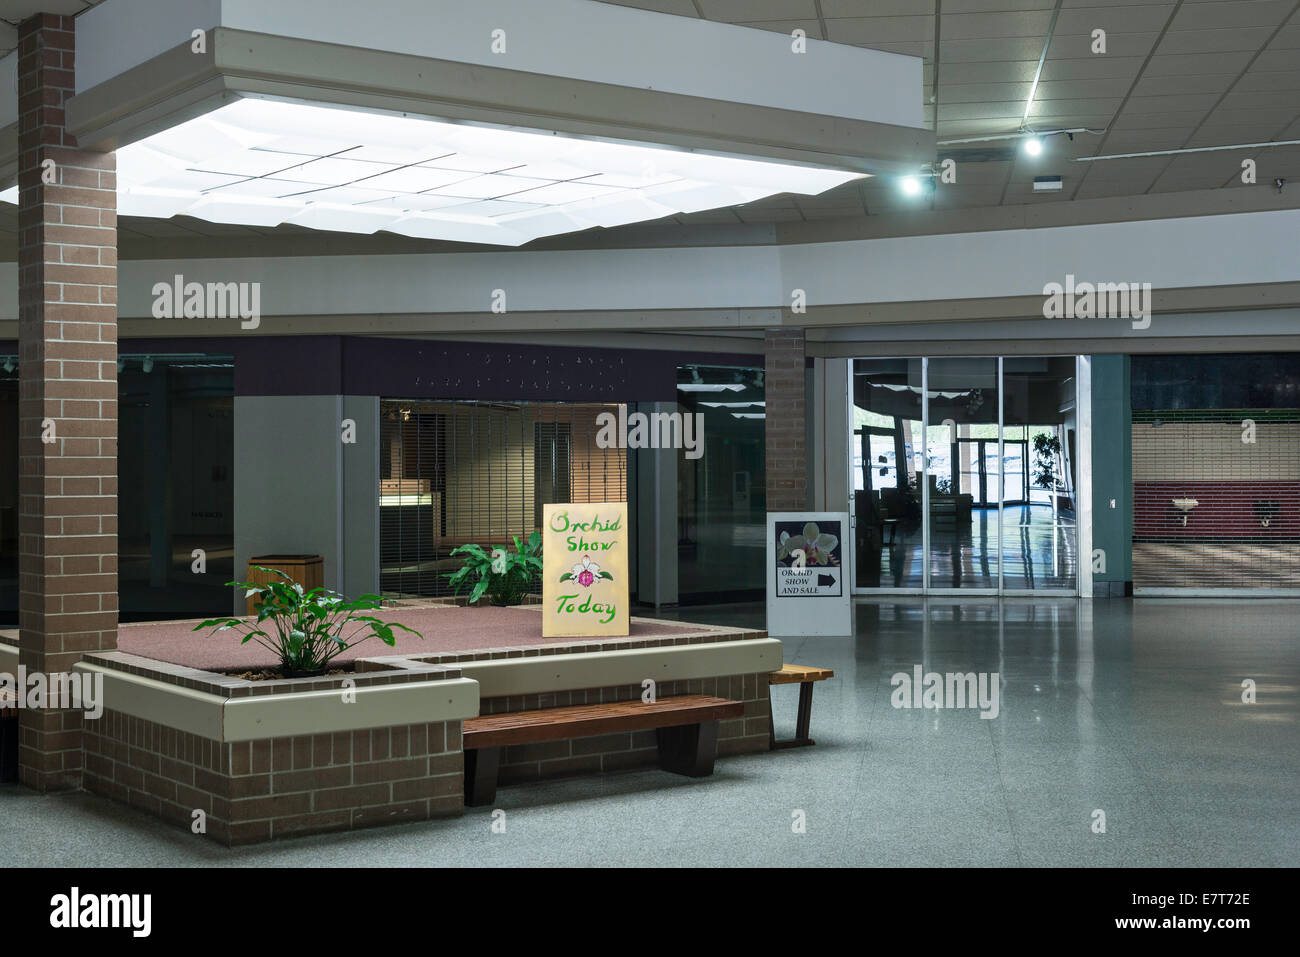 Like a lot of shopping malls across America, Capital City  in Helena, Mont., has many vacant storefronts. - Stock Image